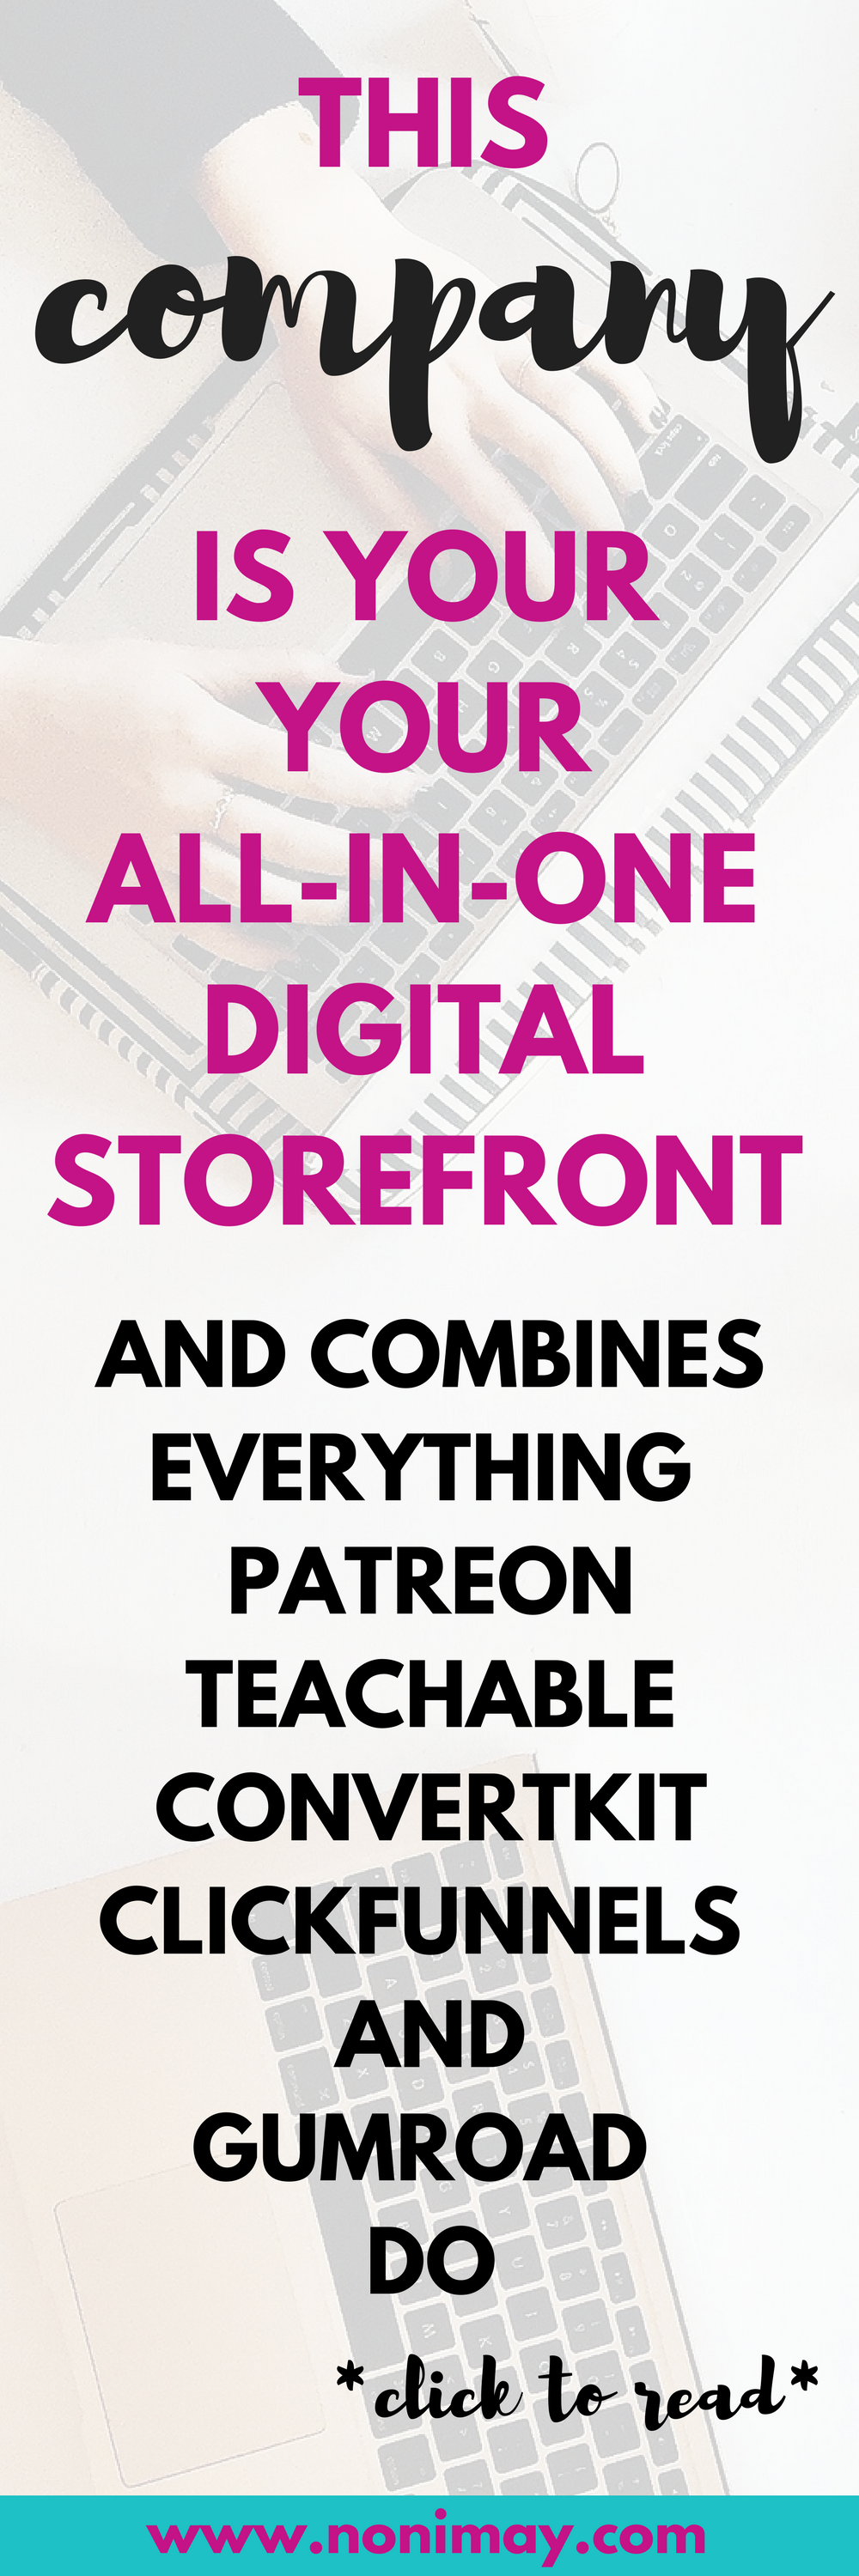 This company is your all-in-one digital storefront and combines everything. Patreon, Teachable and Convertkit